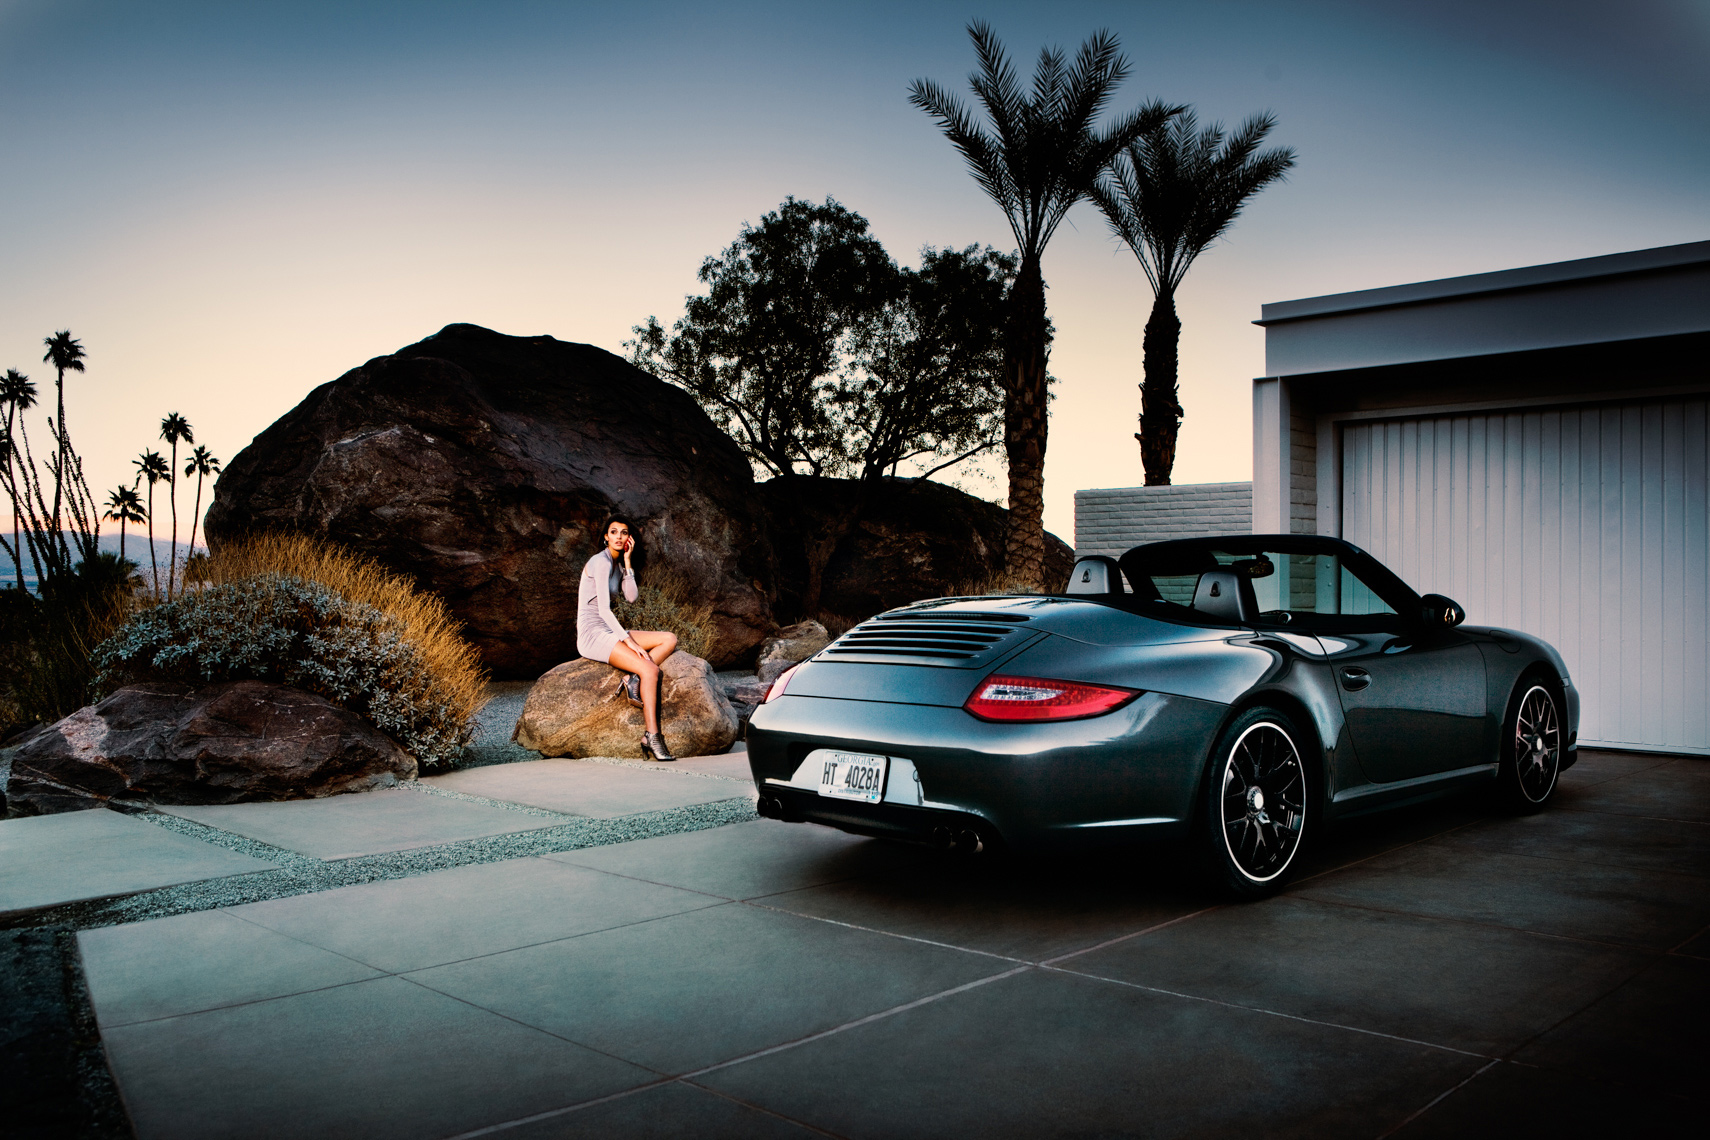 Fashion model Porsche Carrera convertible by commercial automotive car photographer fashion brandMichael Grecco